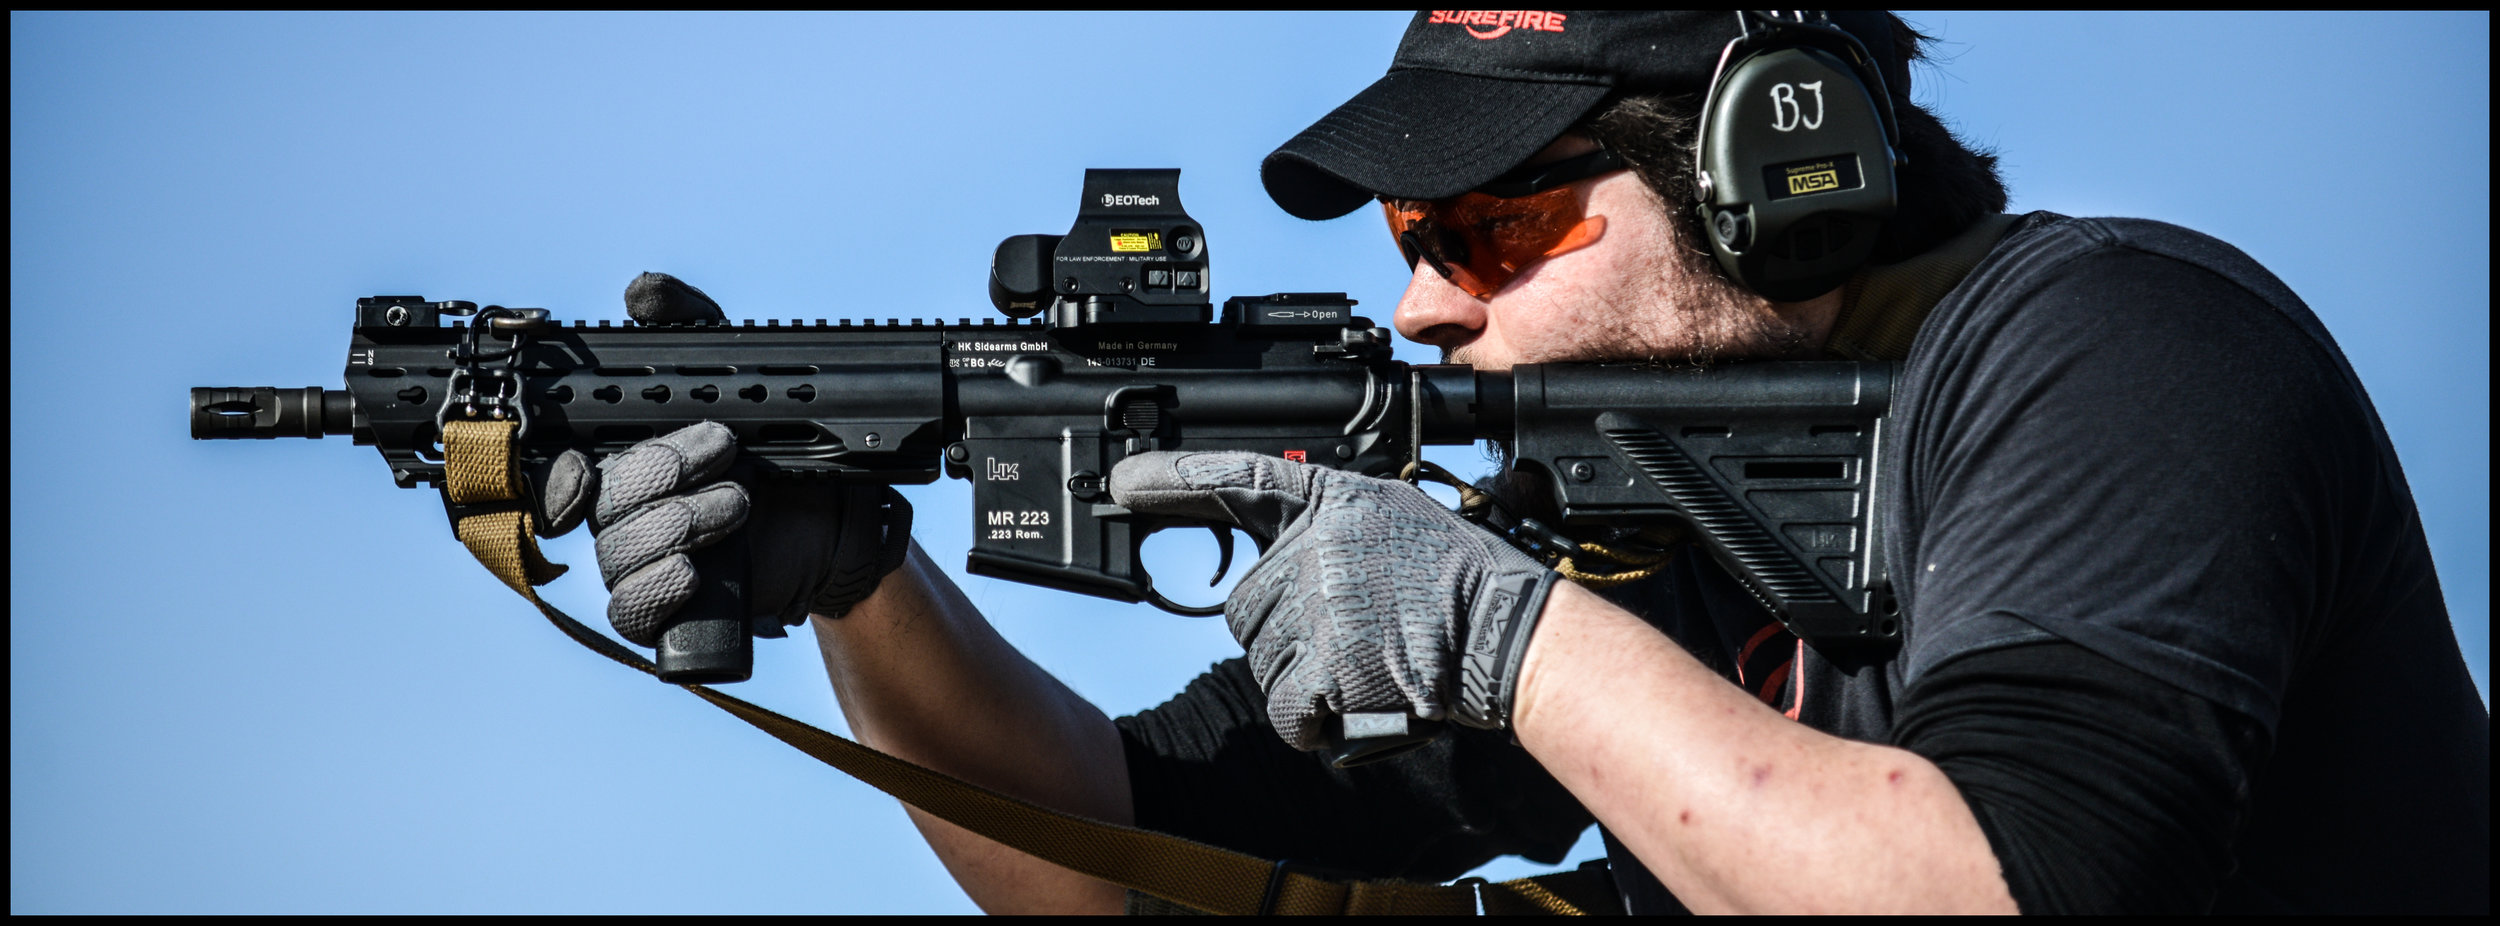 TACTICAL RIFLE - Courses - PDF - Prices